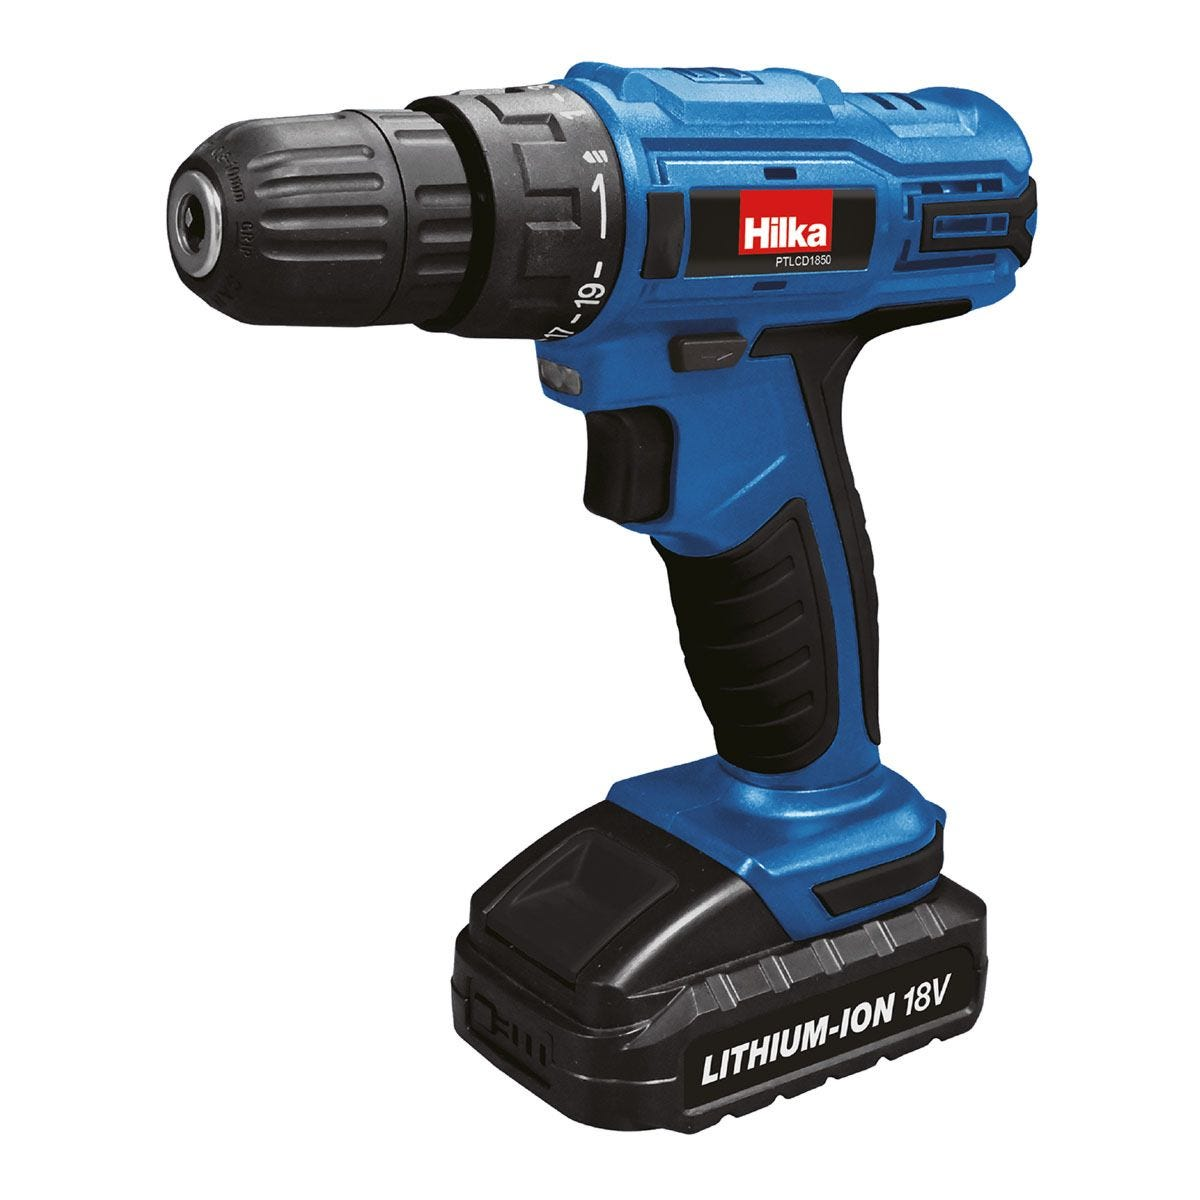 Hilka 18V Li-ion Cordless Drill/Driver with Two Batteries